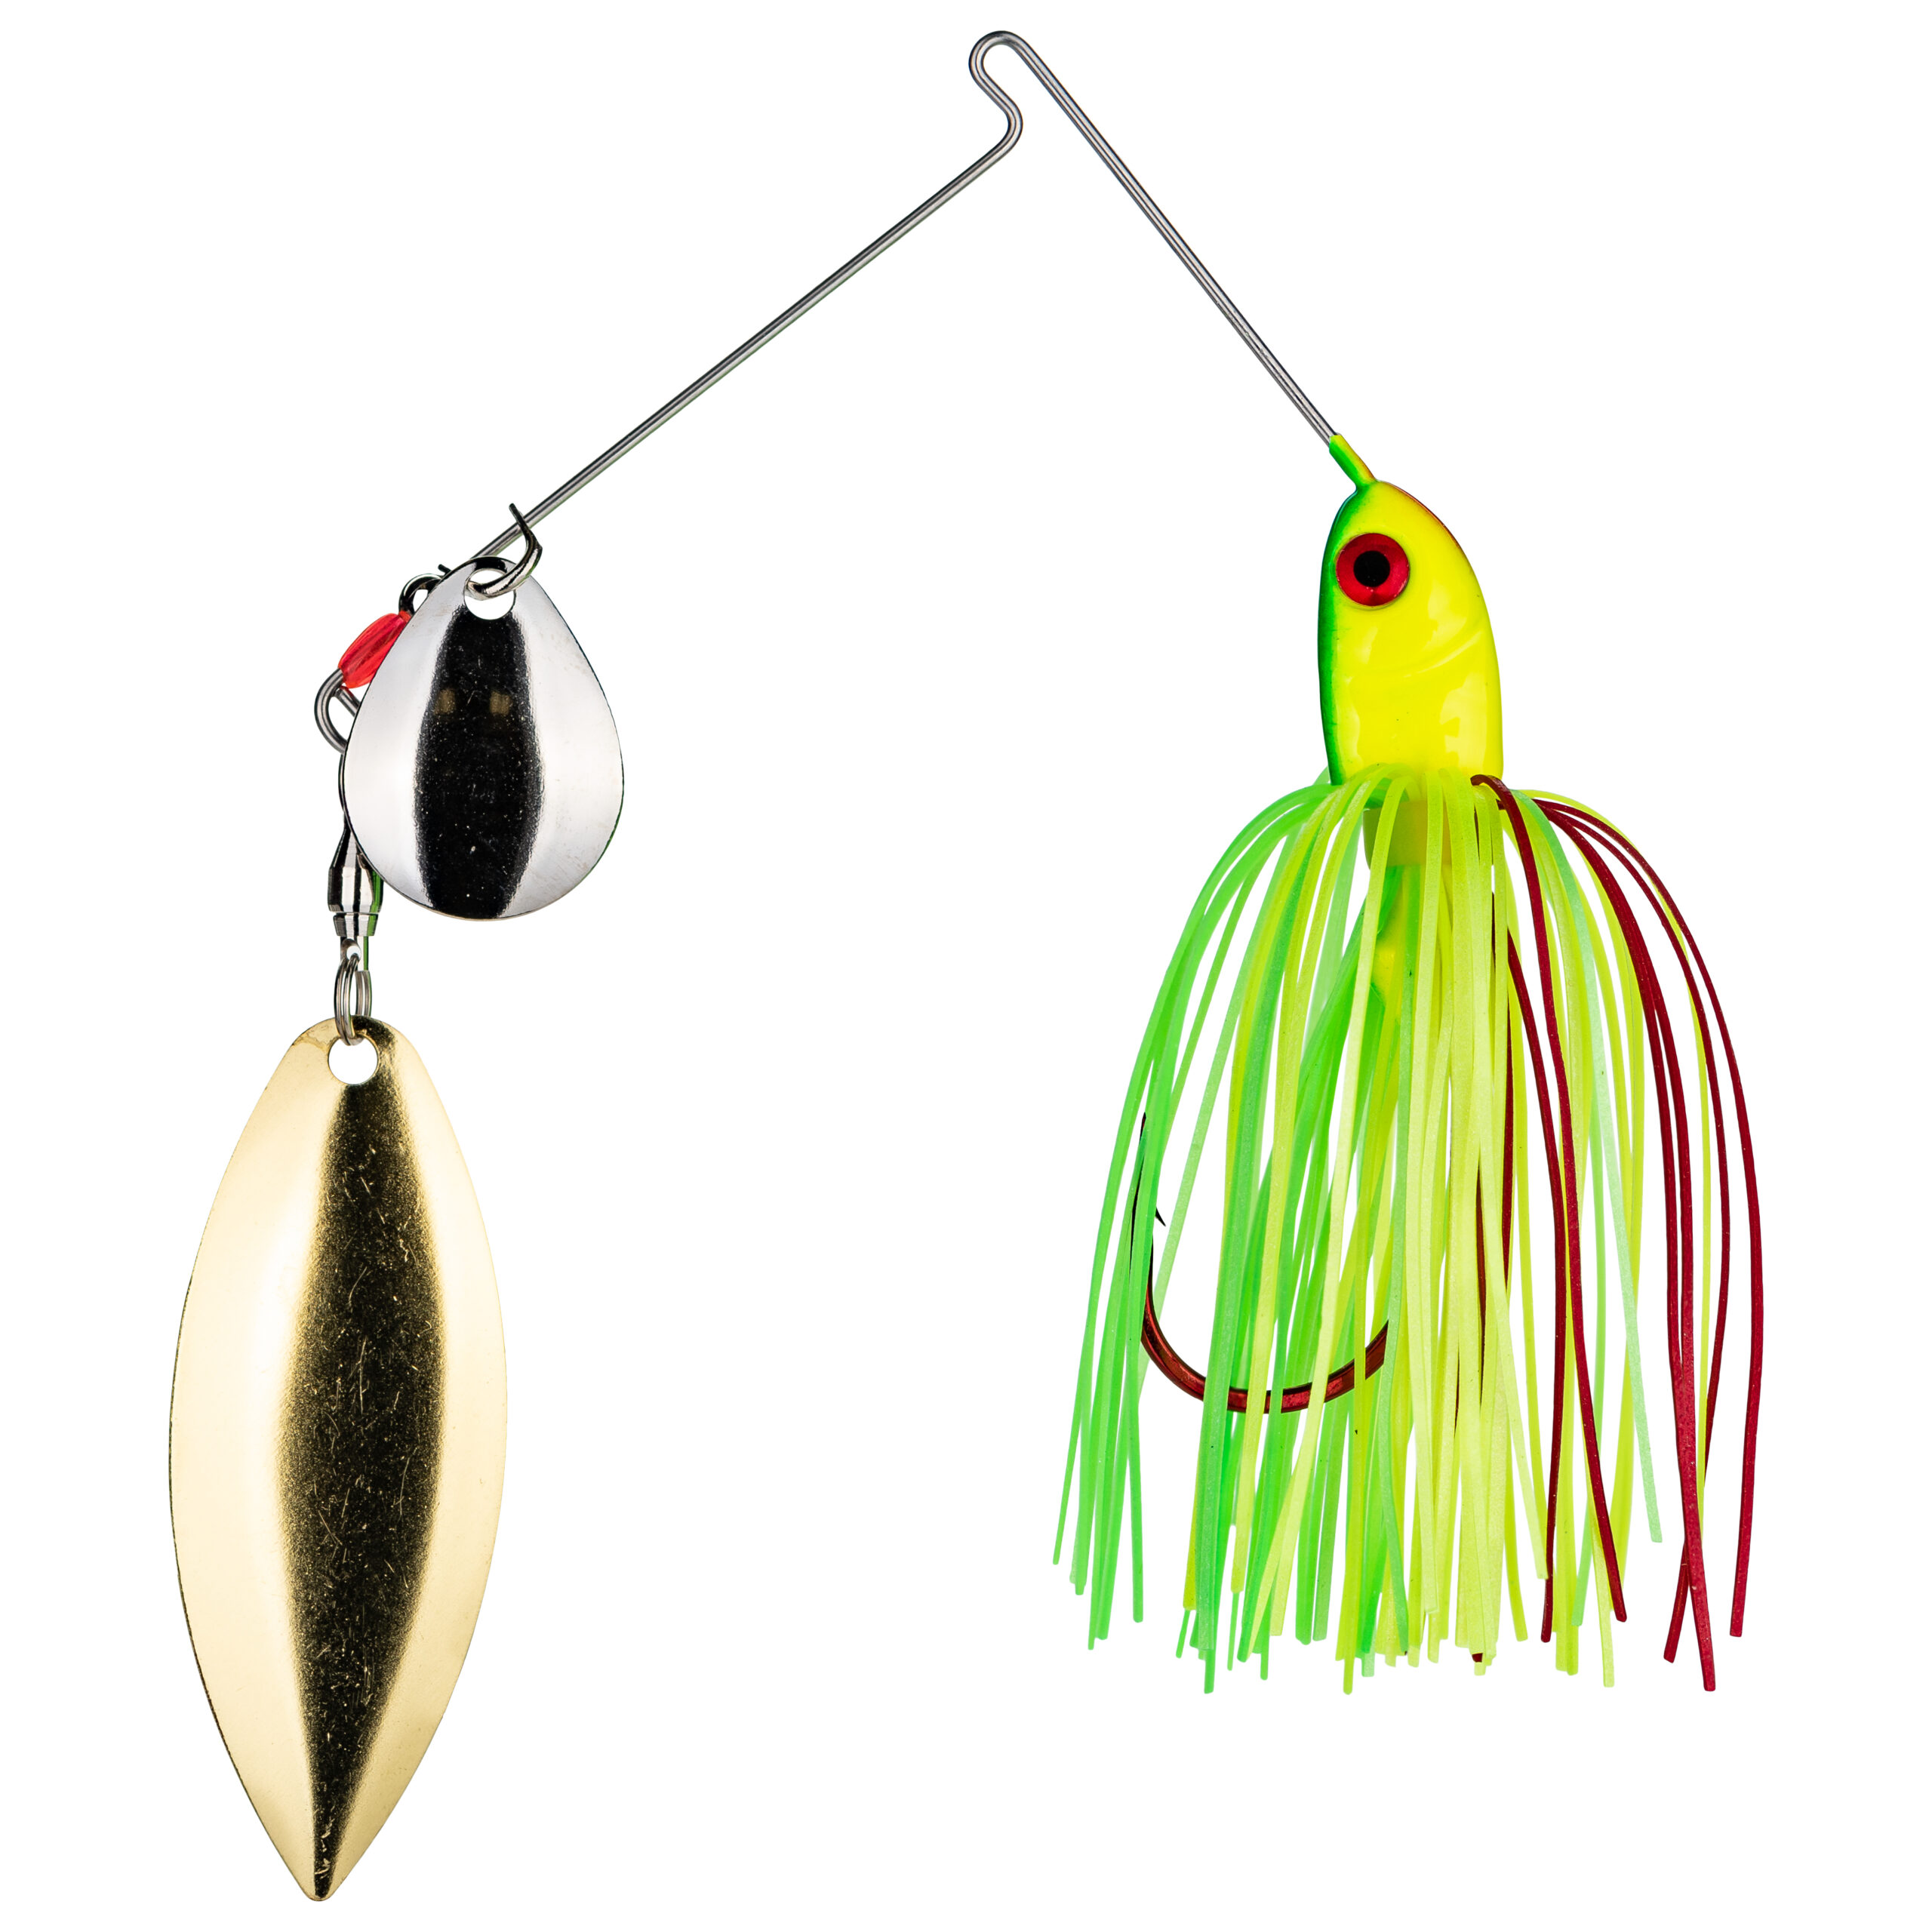 Strike King Lures – Spinnerbaits – Colorado Willow - 3/8oz - BB38CW-317SG - Fire Tiger